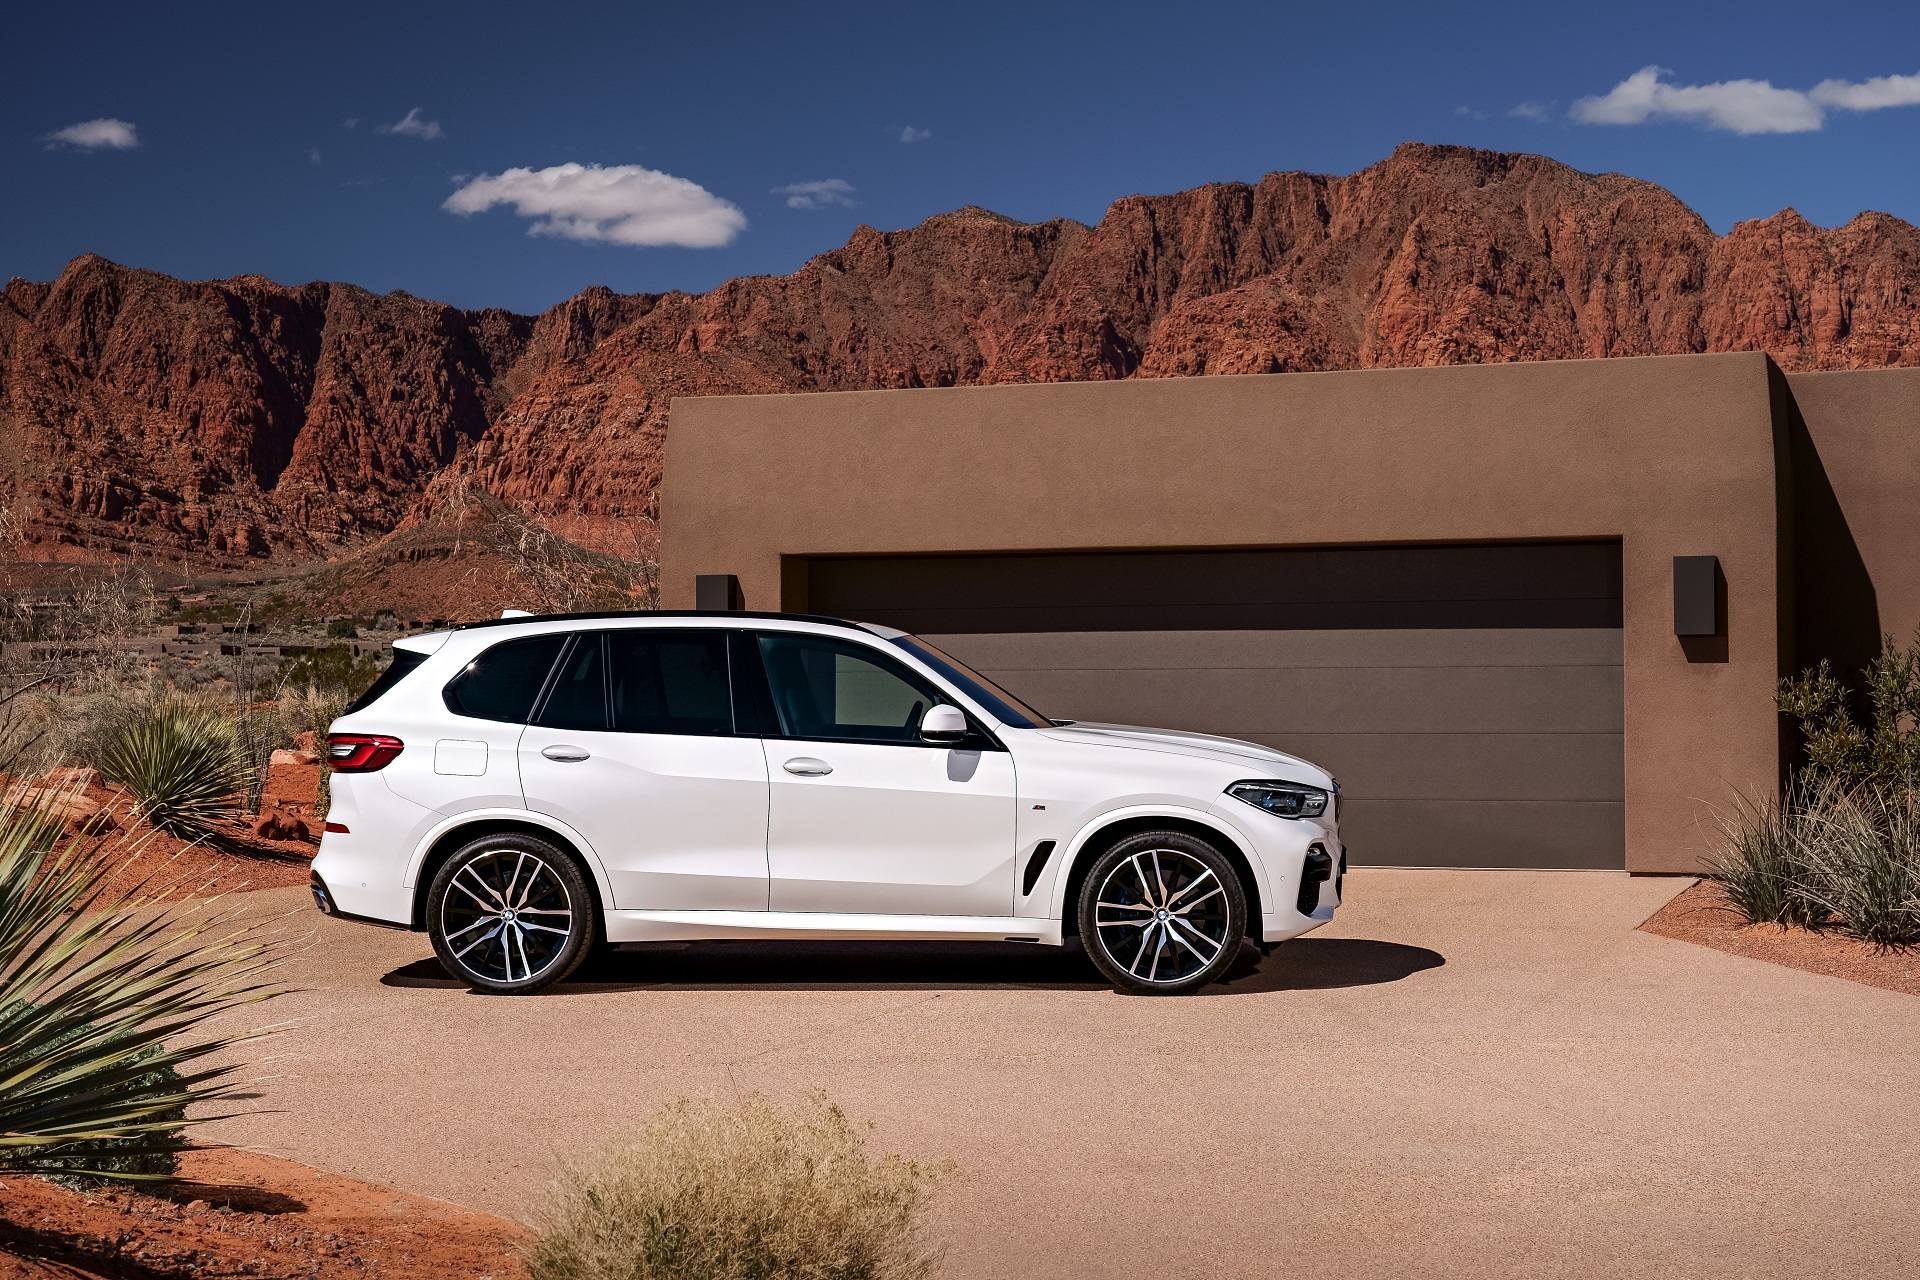 2019 BMW X5: Mid-Size Crossover, Full-Size Grille - The Drive